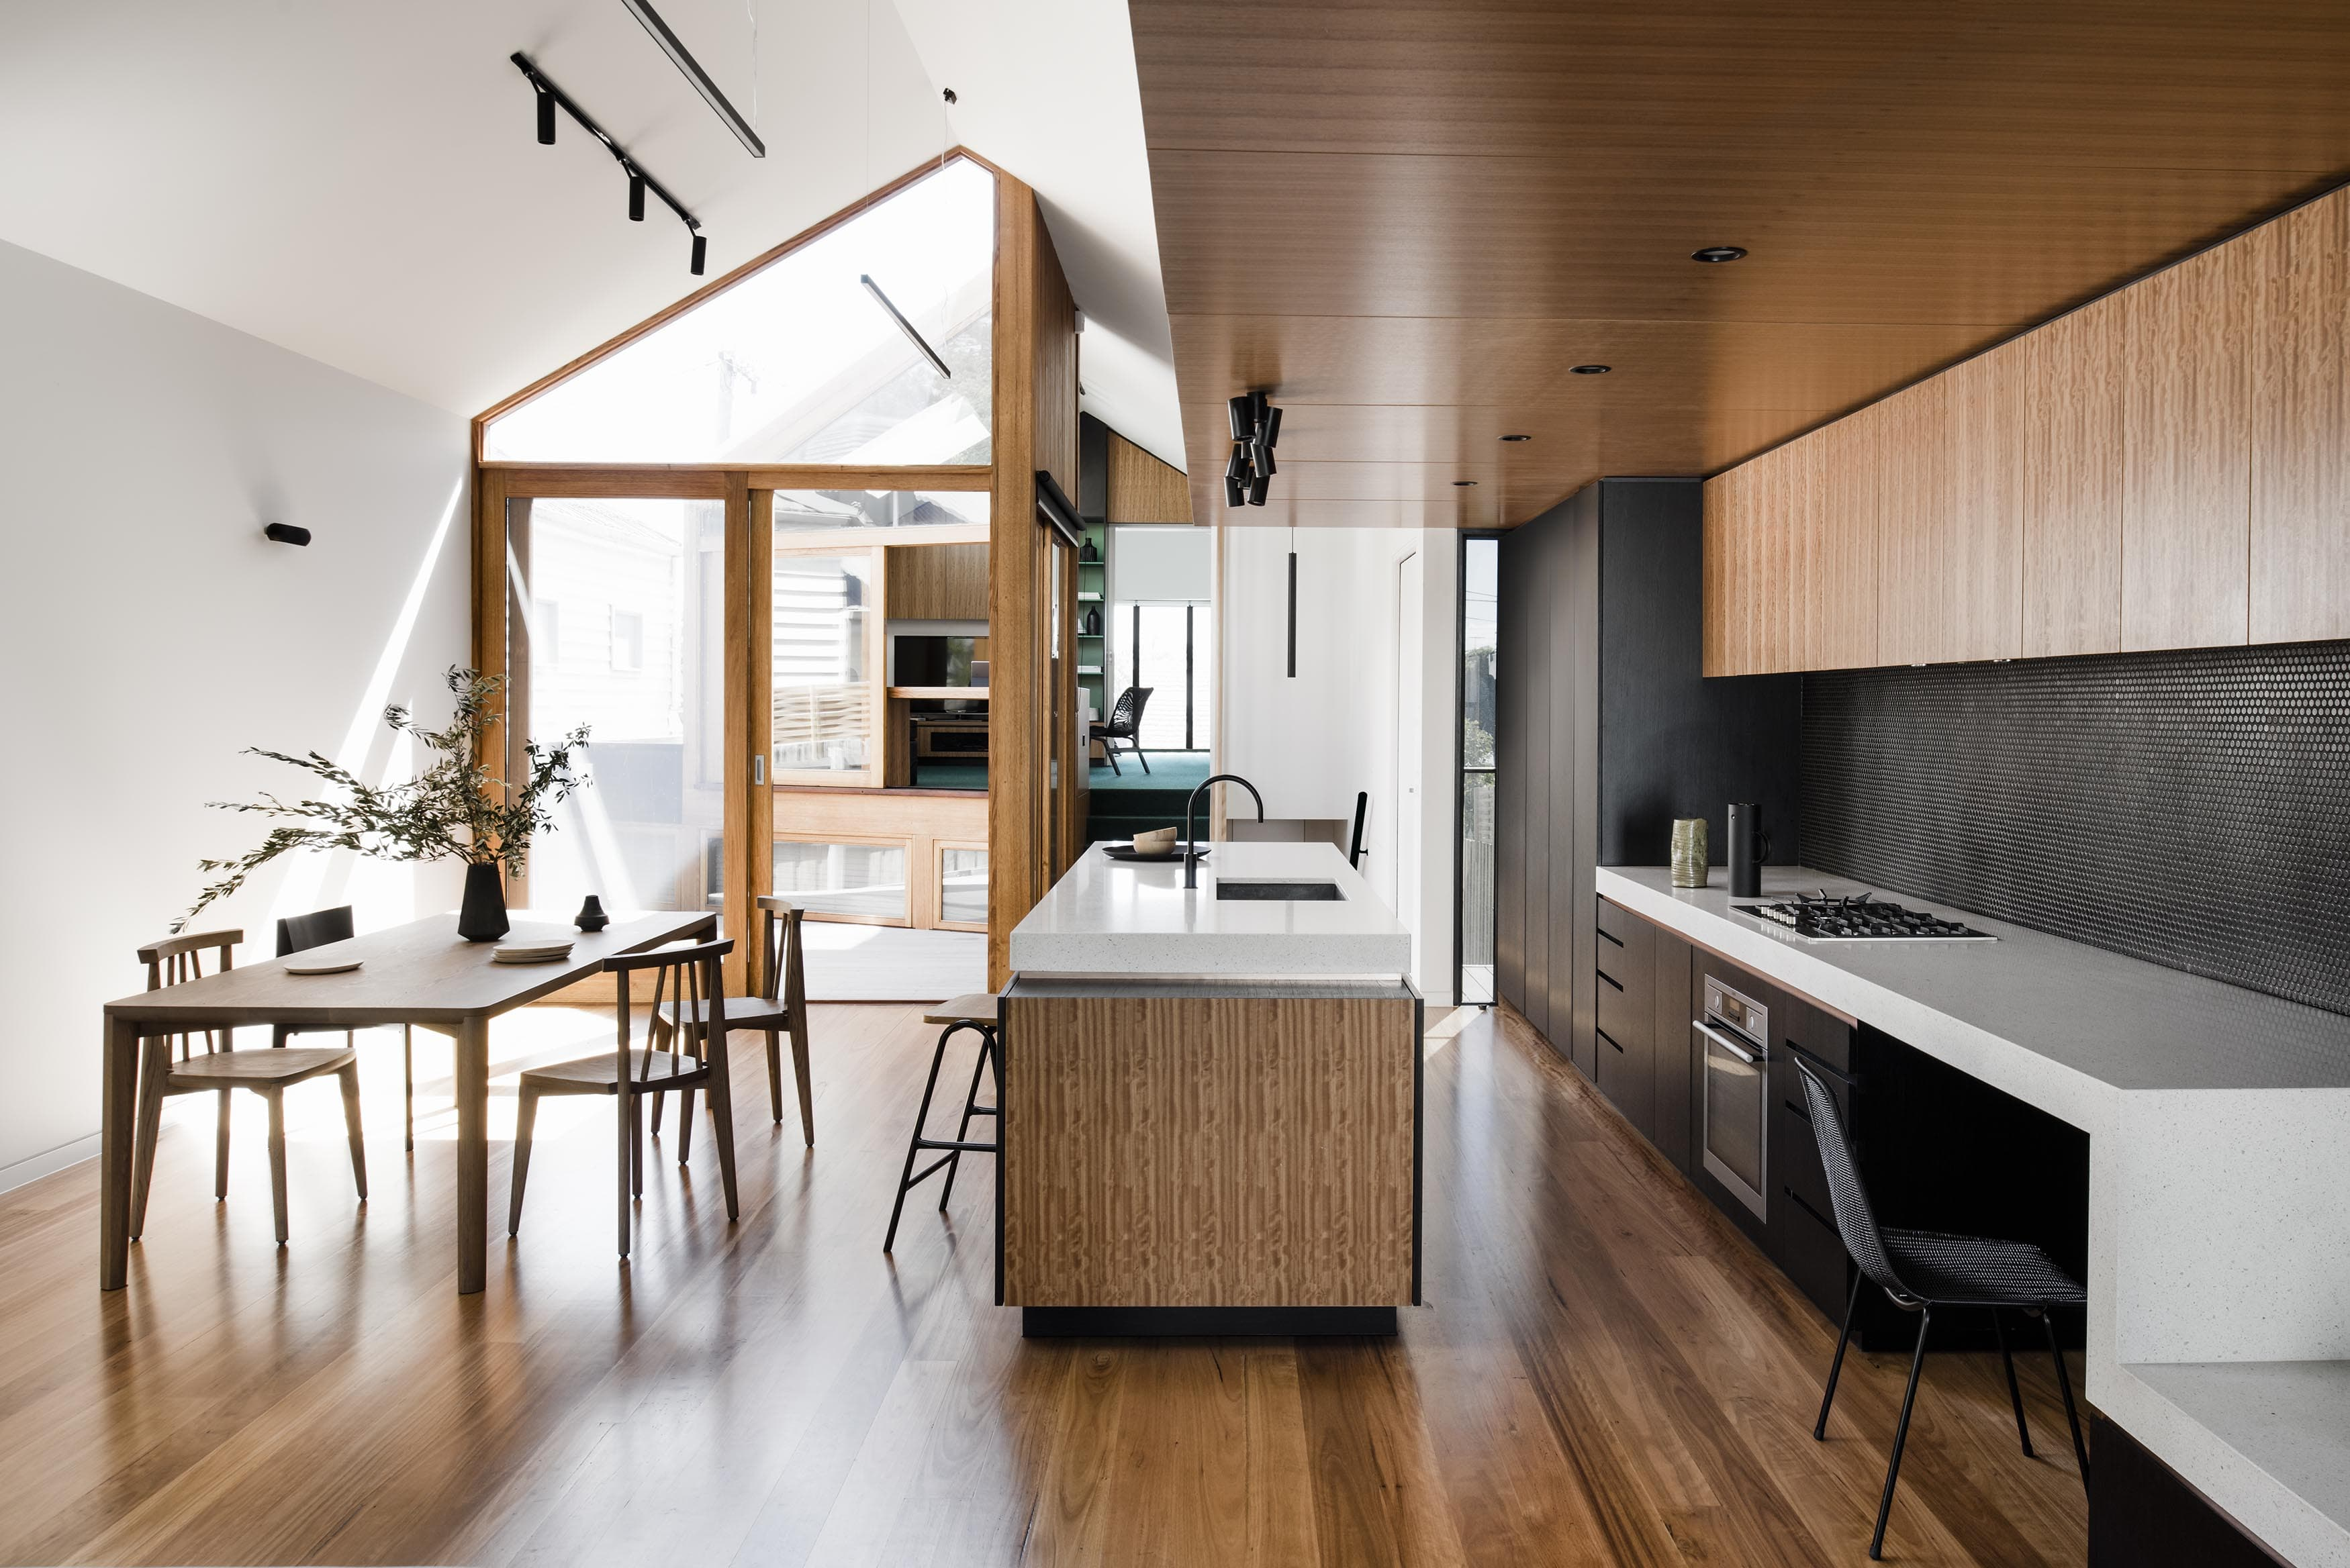 The 2018 Victorian Architecture Awards Feature Article Australiadatum House Figr Architecture (photog Tom Blachford) Min